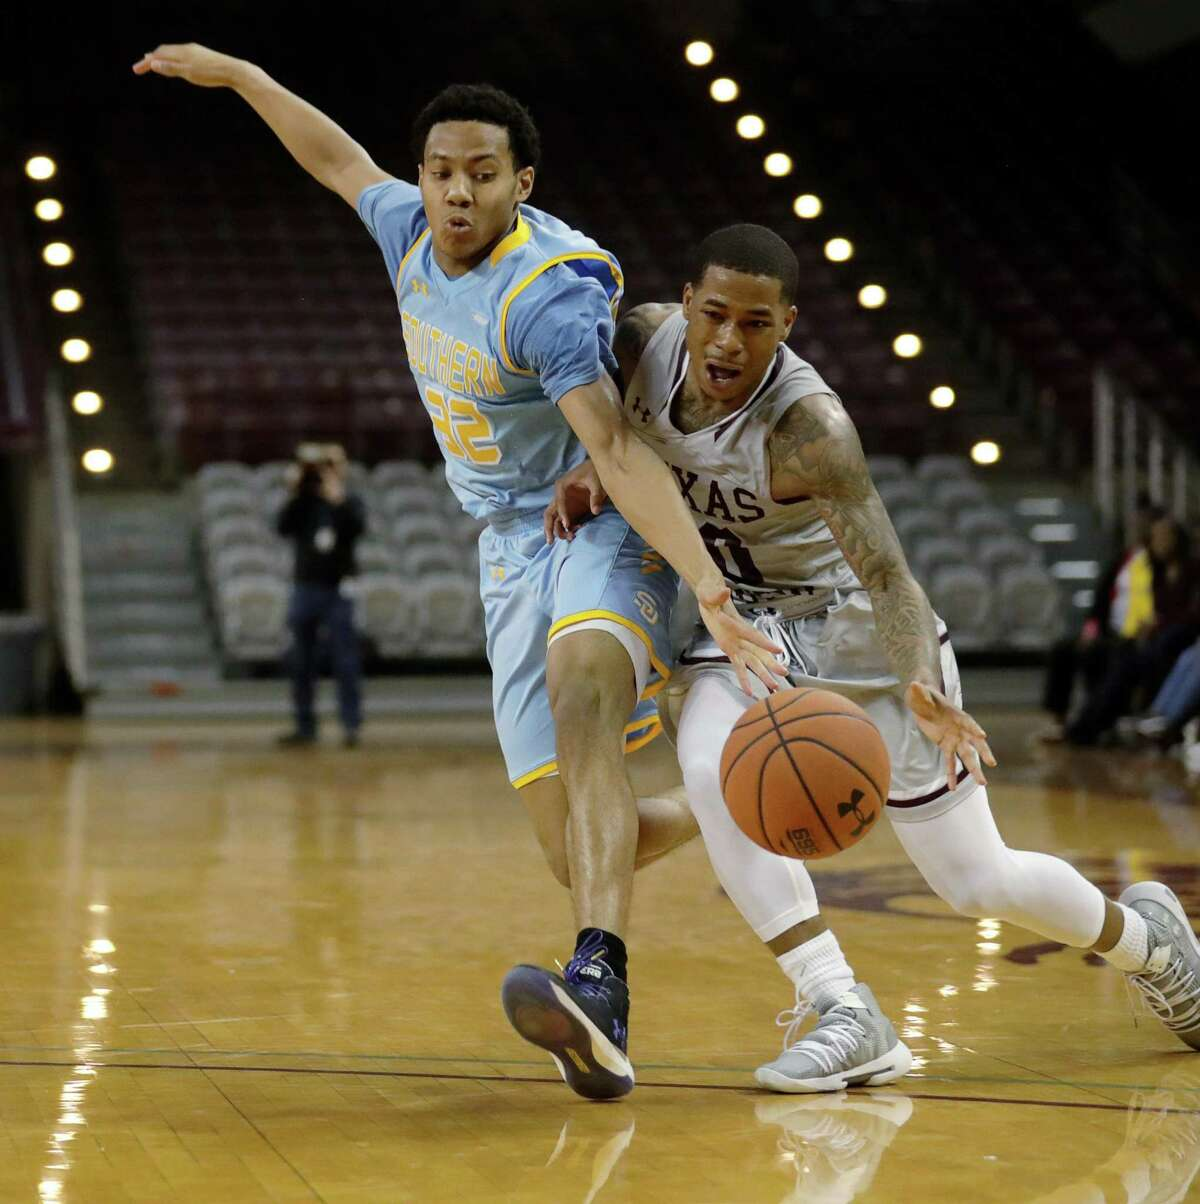 Southern University Jaguars guard Jayden Saddler (32) guards Texas Southern Tigers guard Tyrik Armstrong (20) while he drives to the basket during the second half of a SWAC tournament quarterfinal game at TSU's HPE Arena, Tuesday, March 12, 2019, in Houston.